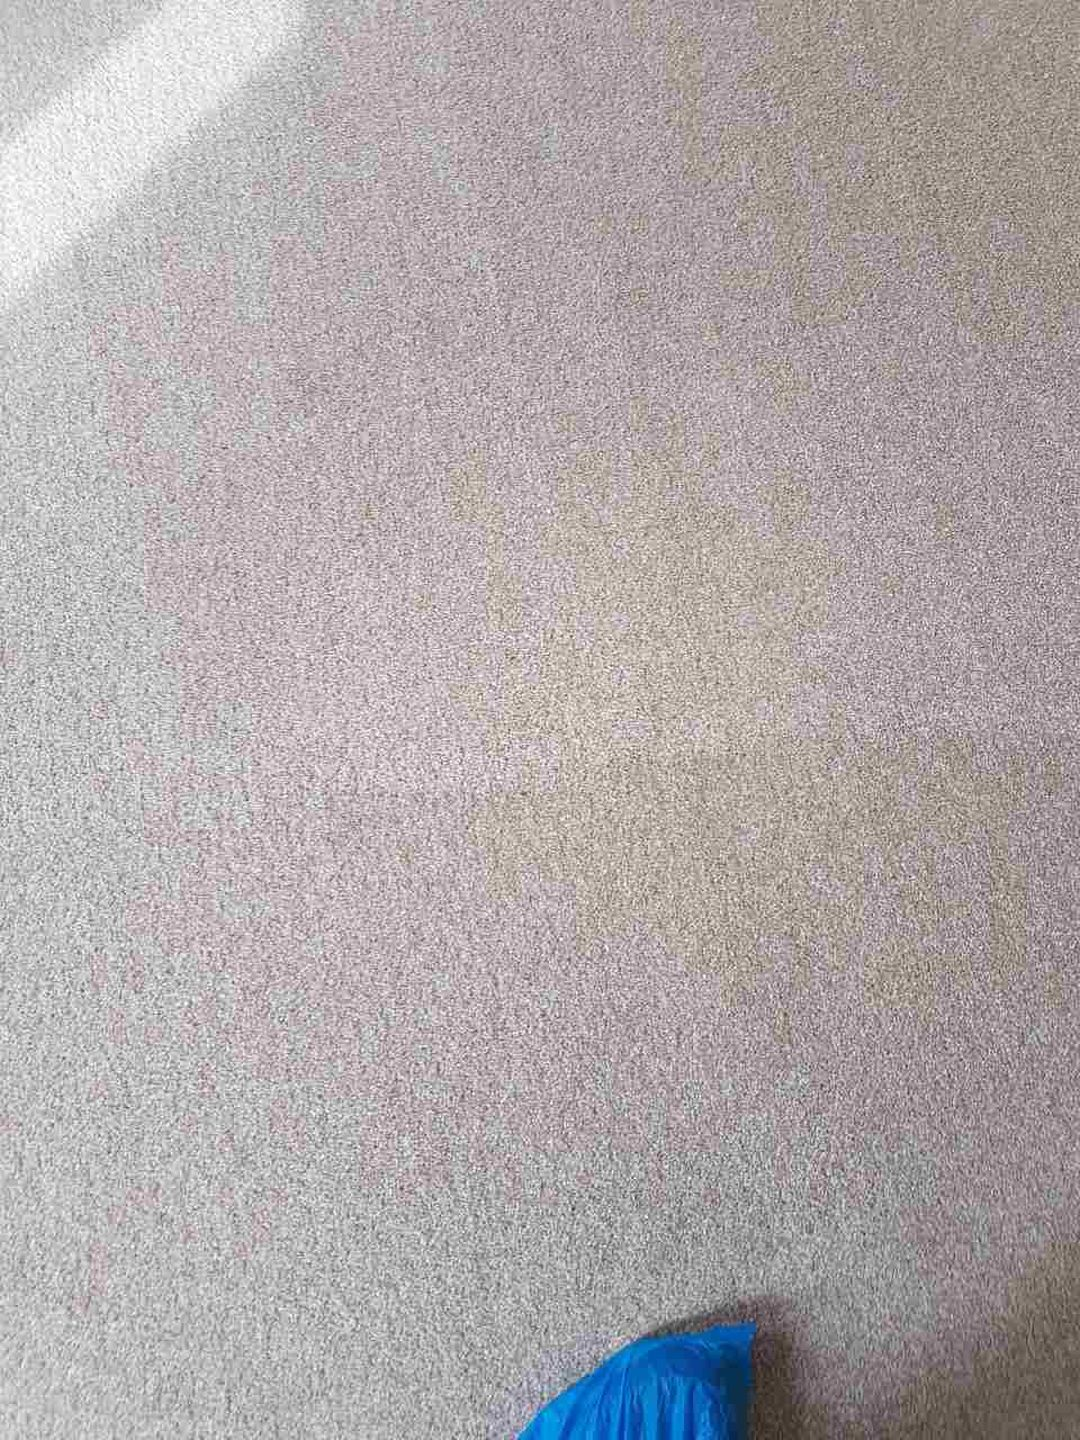 cleaning sofa Greenhithe